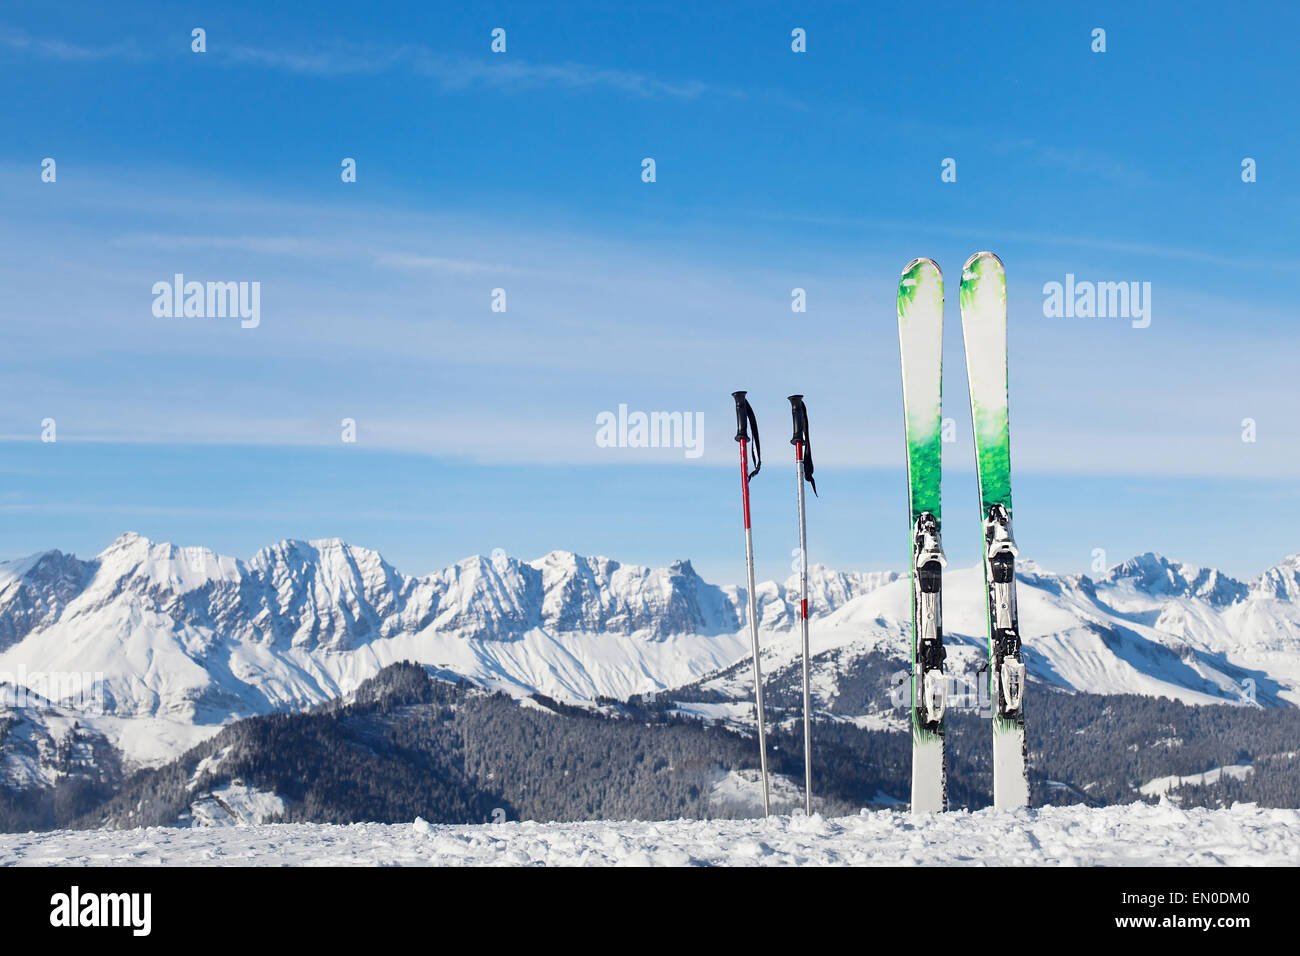 skiing in Alps, ready for winter vacations - Stock Image